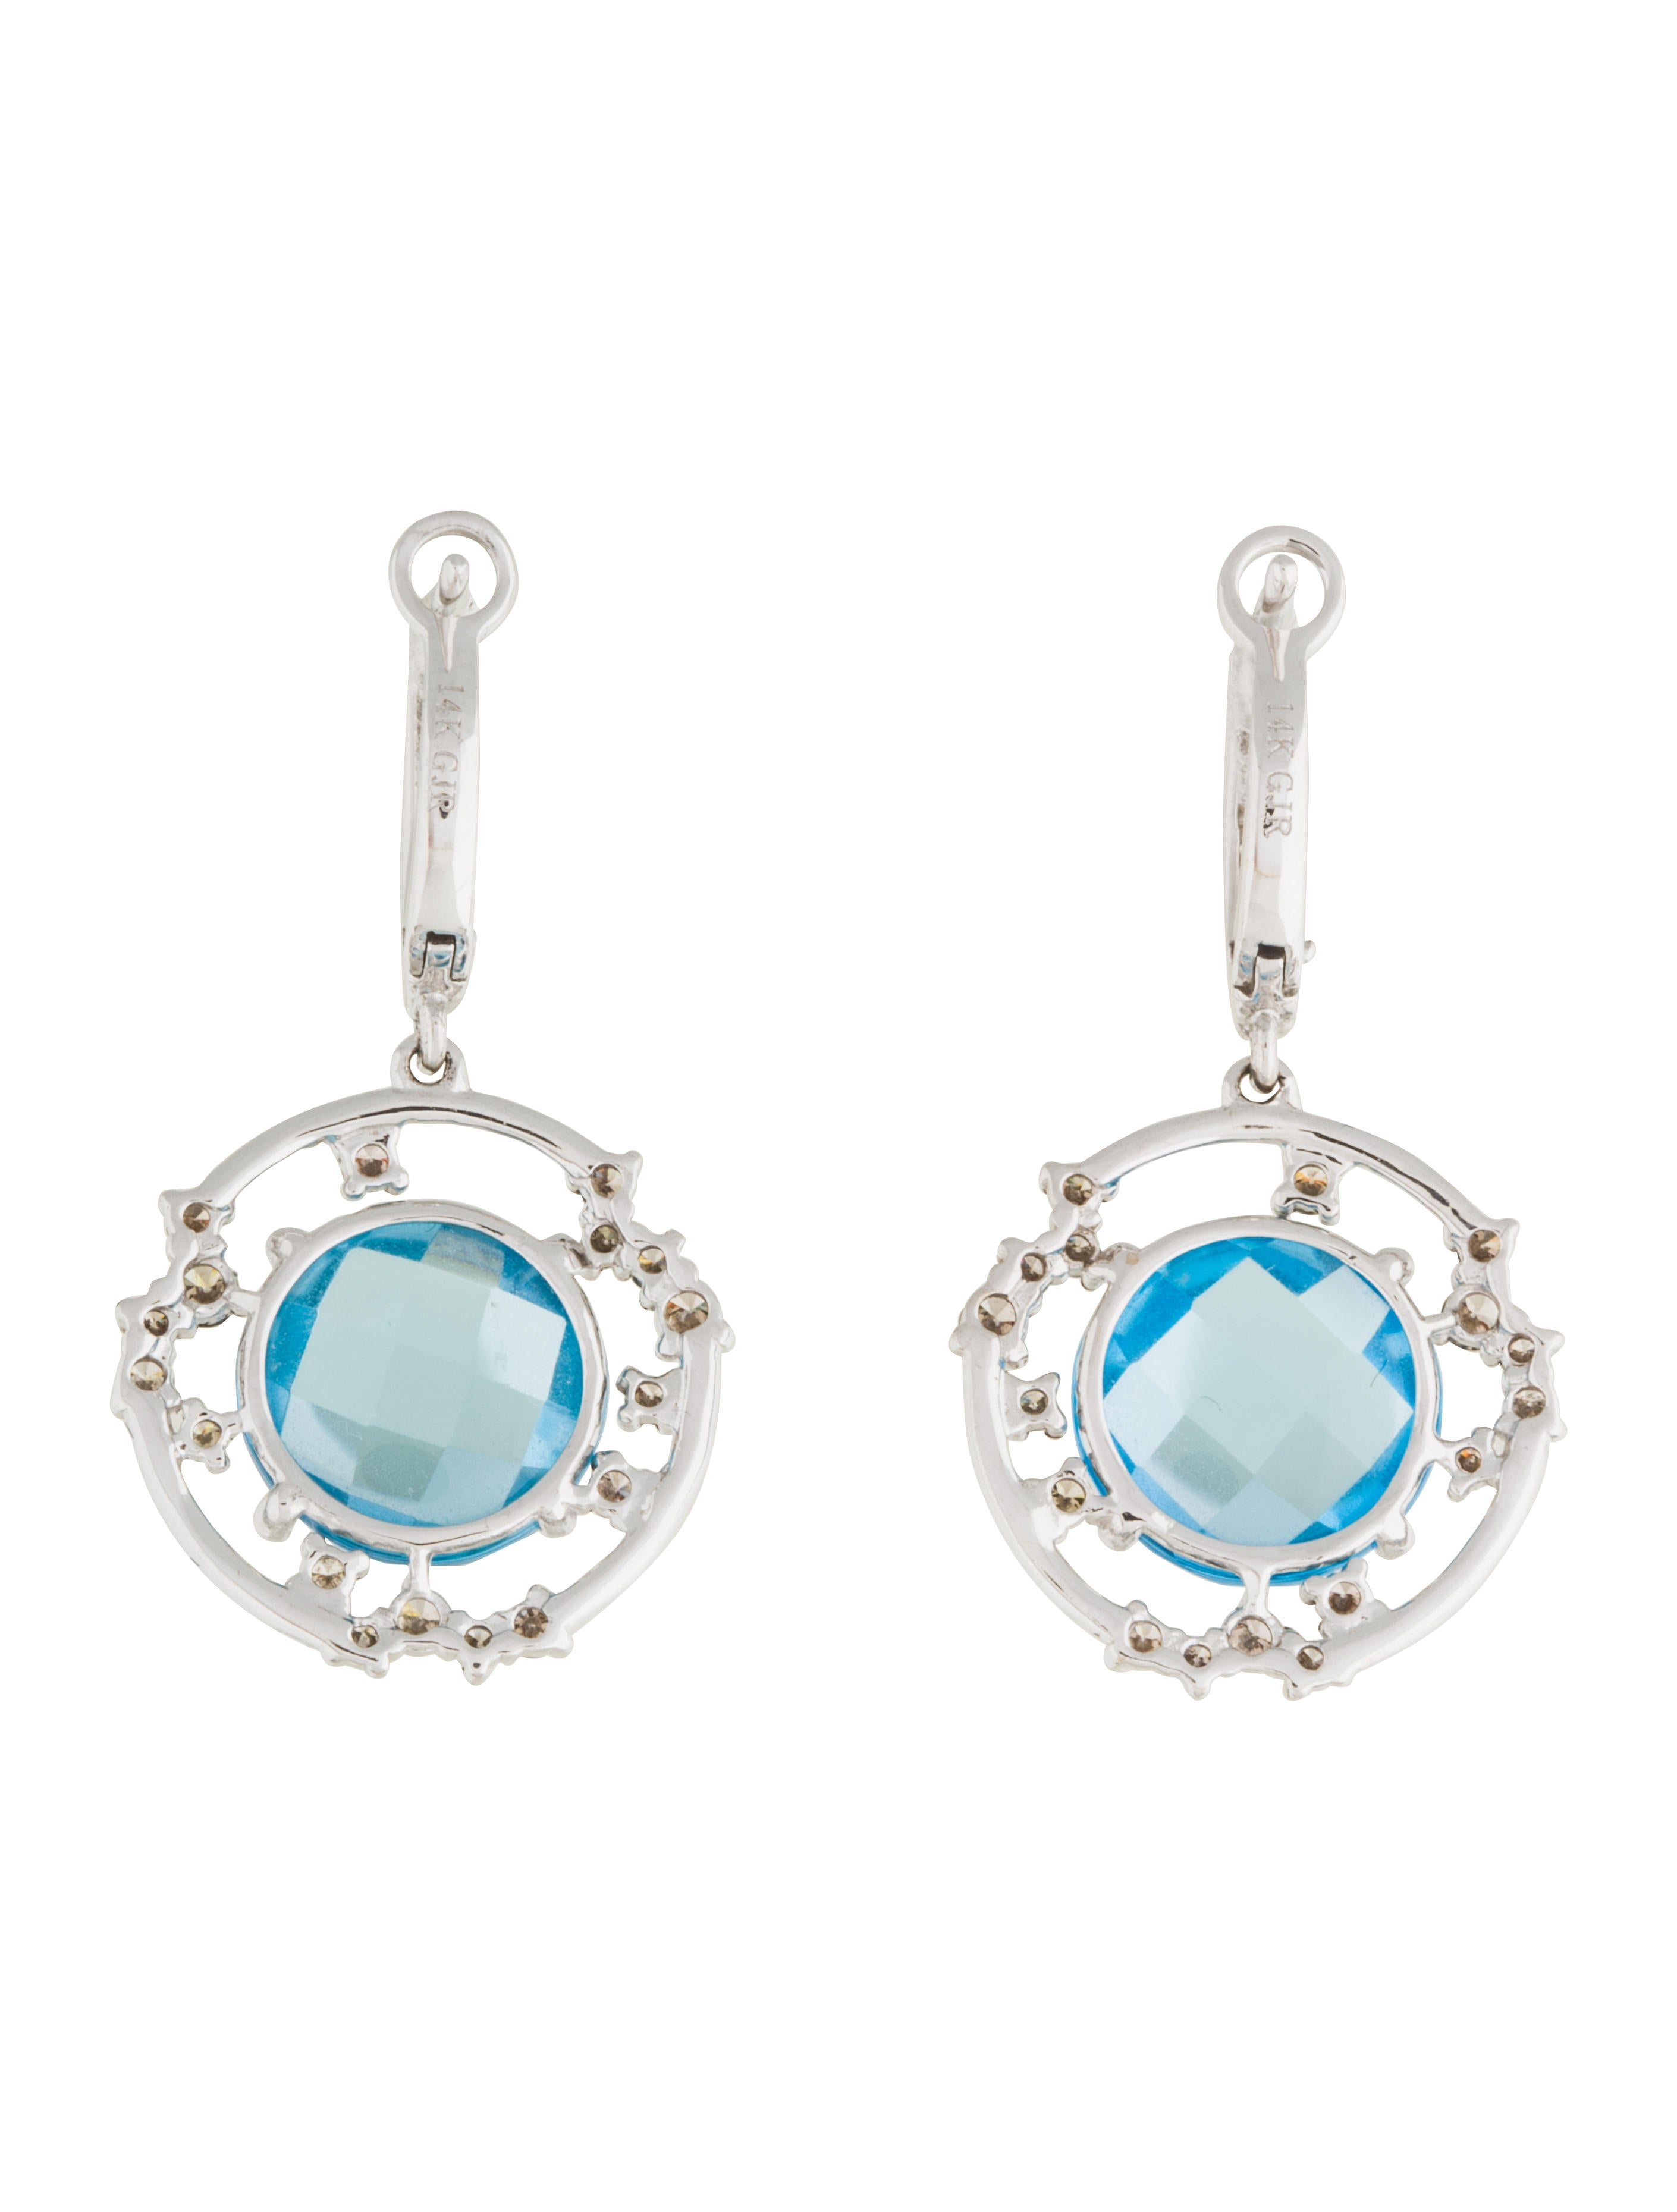 14k blue topaz drop earrings earrings